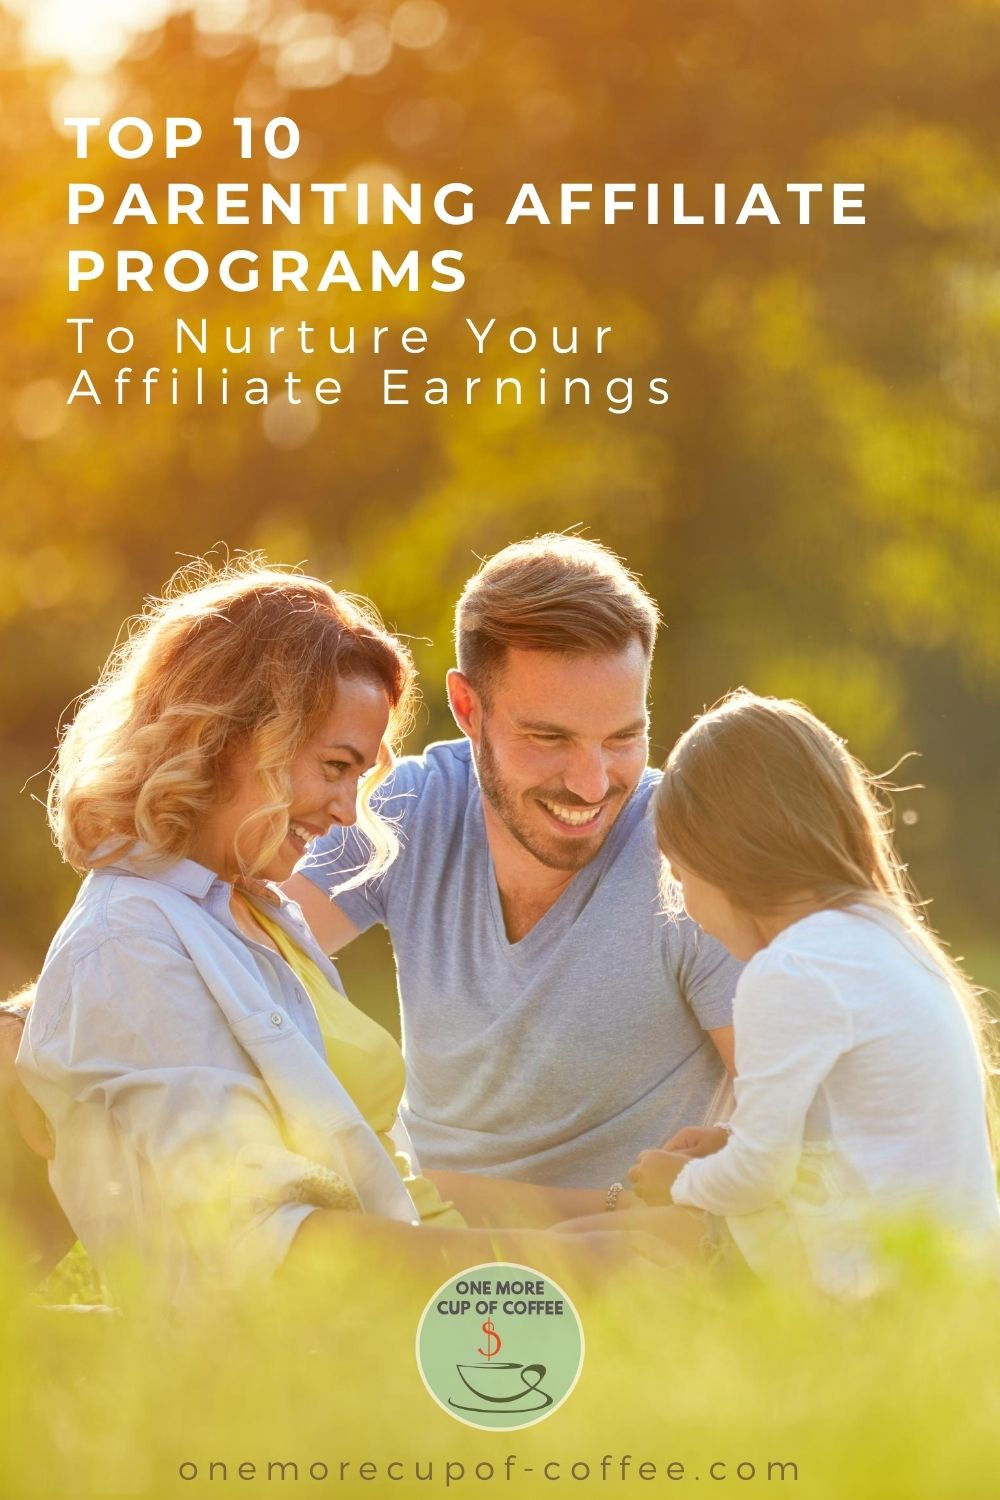 """parents and their daughter hanging out in an open field, with text overlay """"Top 10 Parenting Affiliate Programs To Nurture Your Affiliate Earnings"""""""